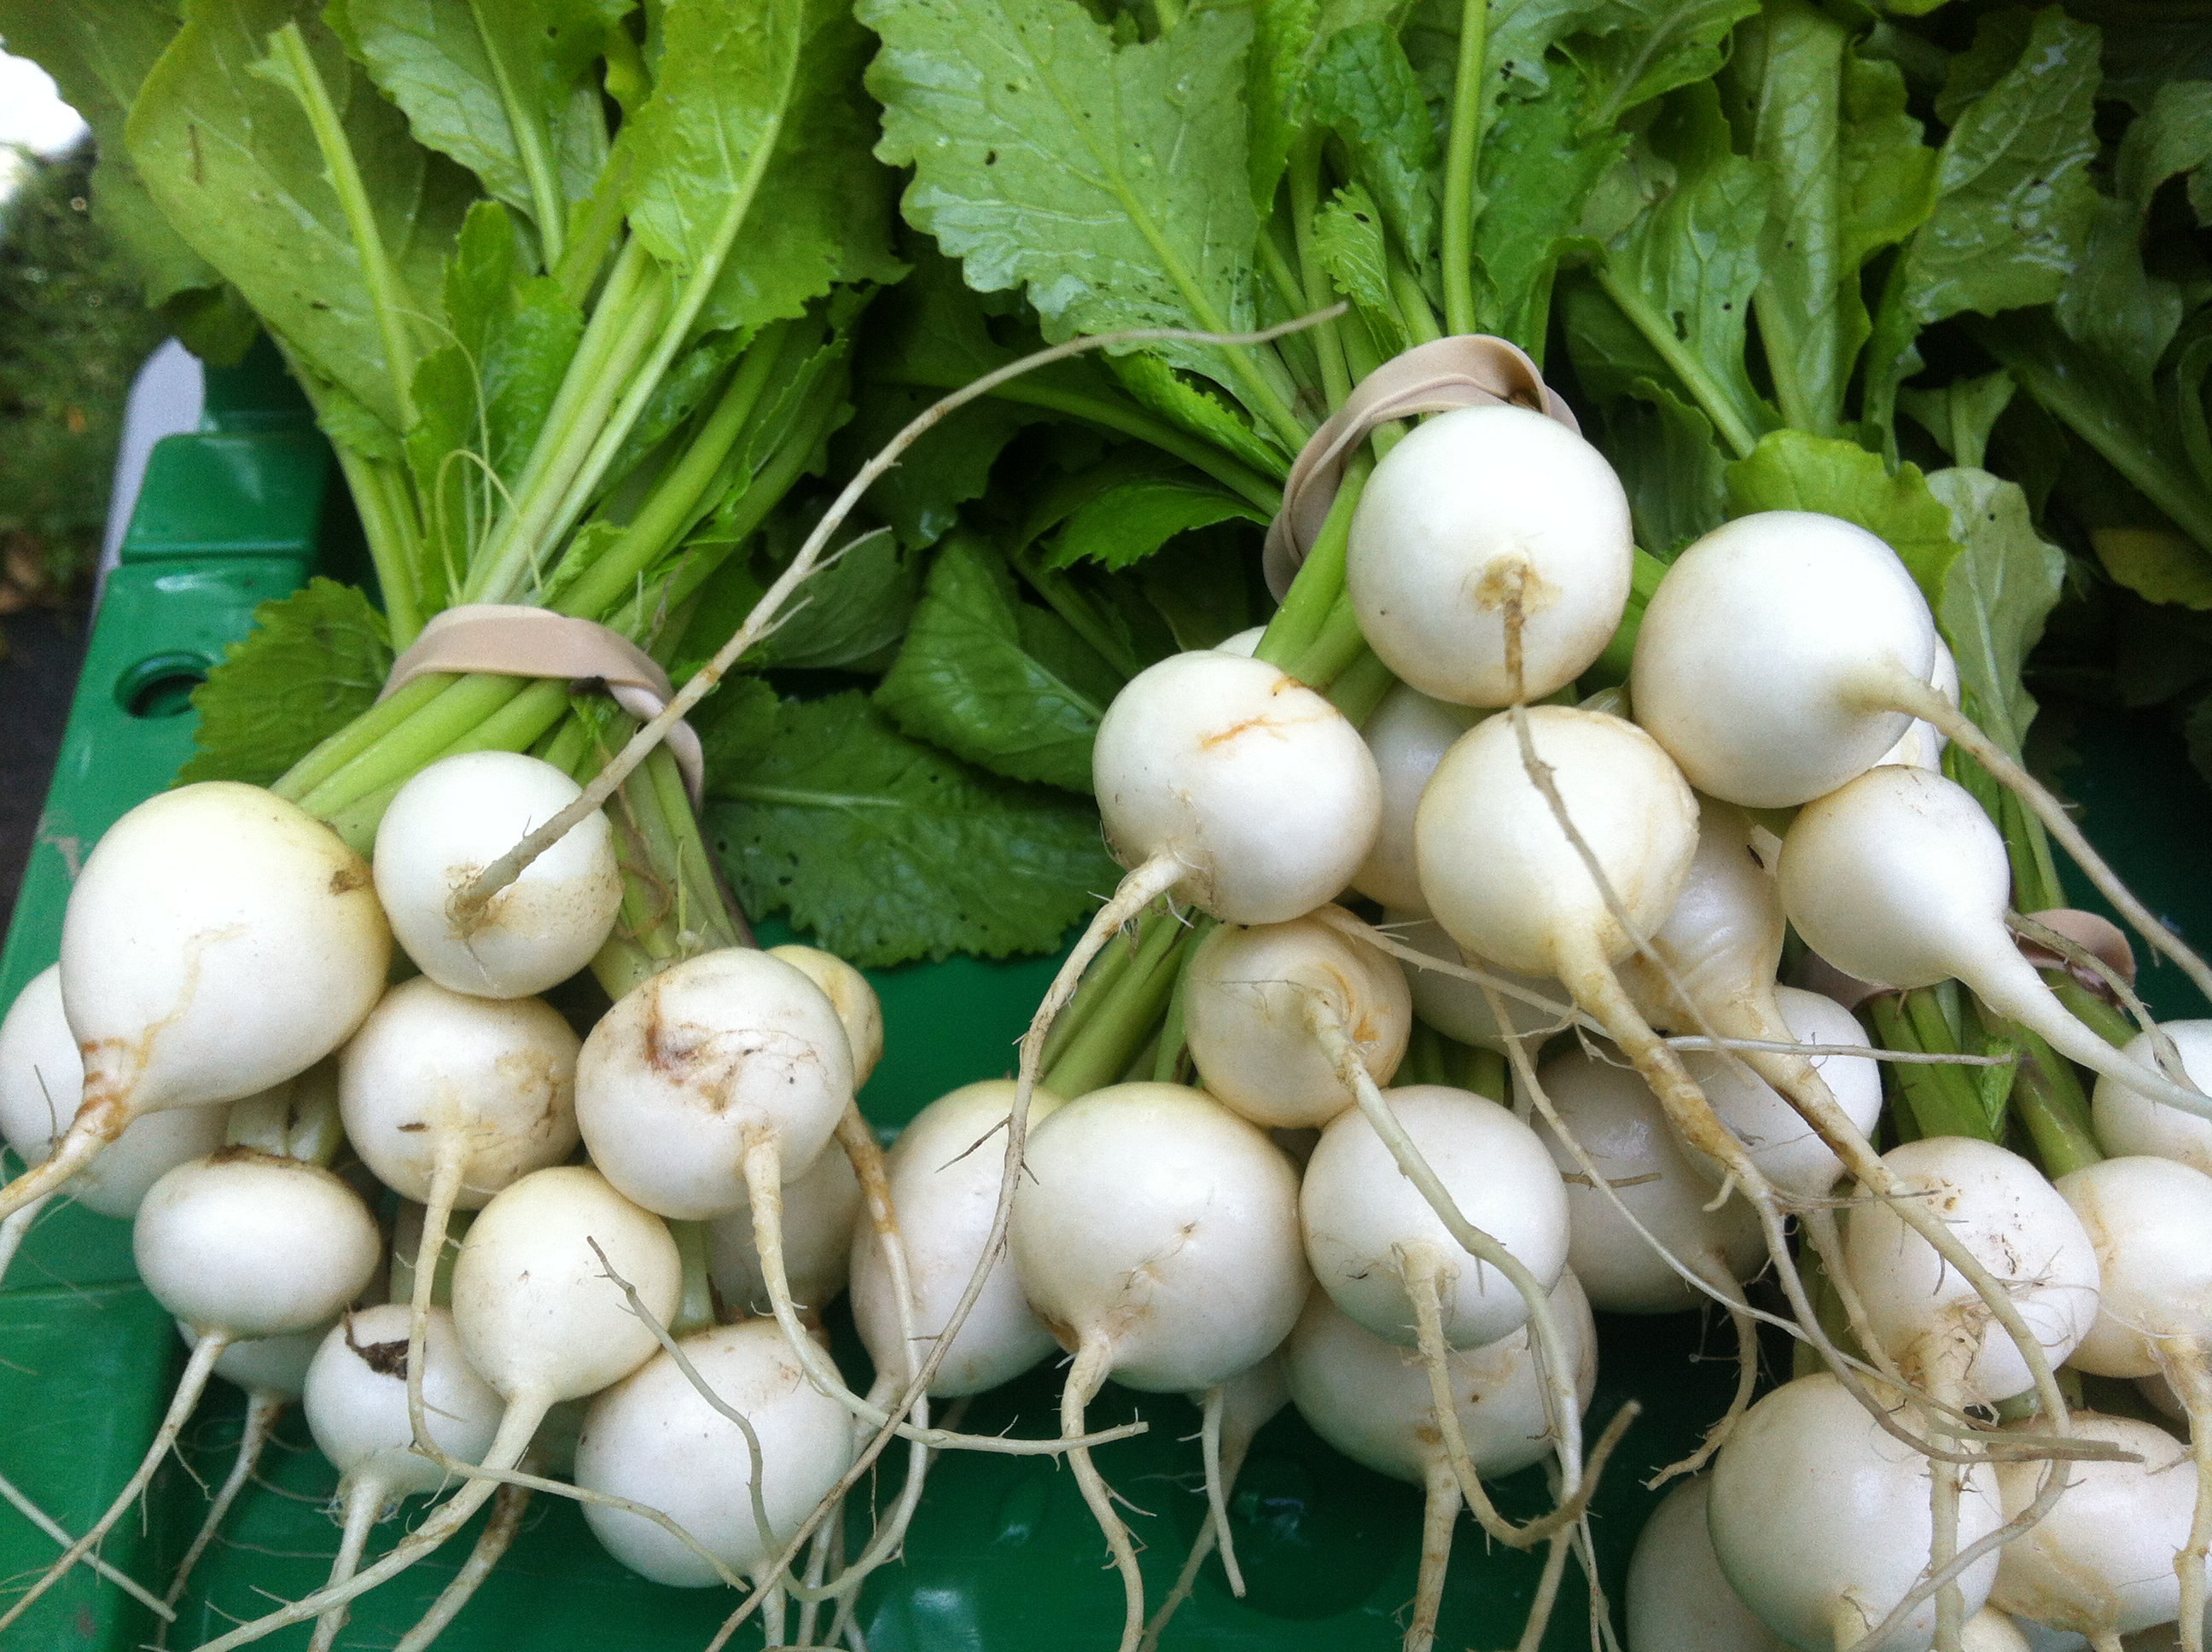 THROWBACK THURSDAY: Those Beautiful Turnips - Are They Animal Food?